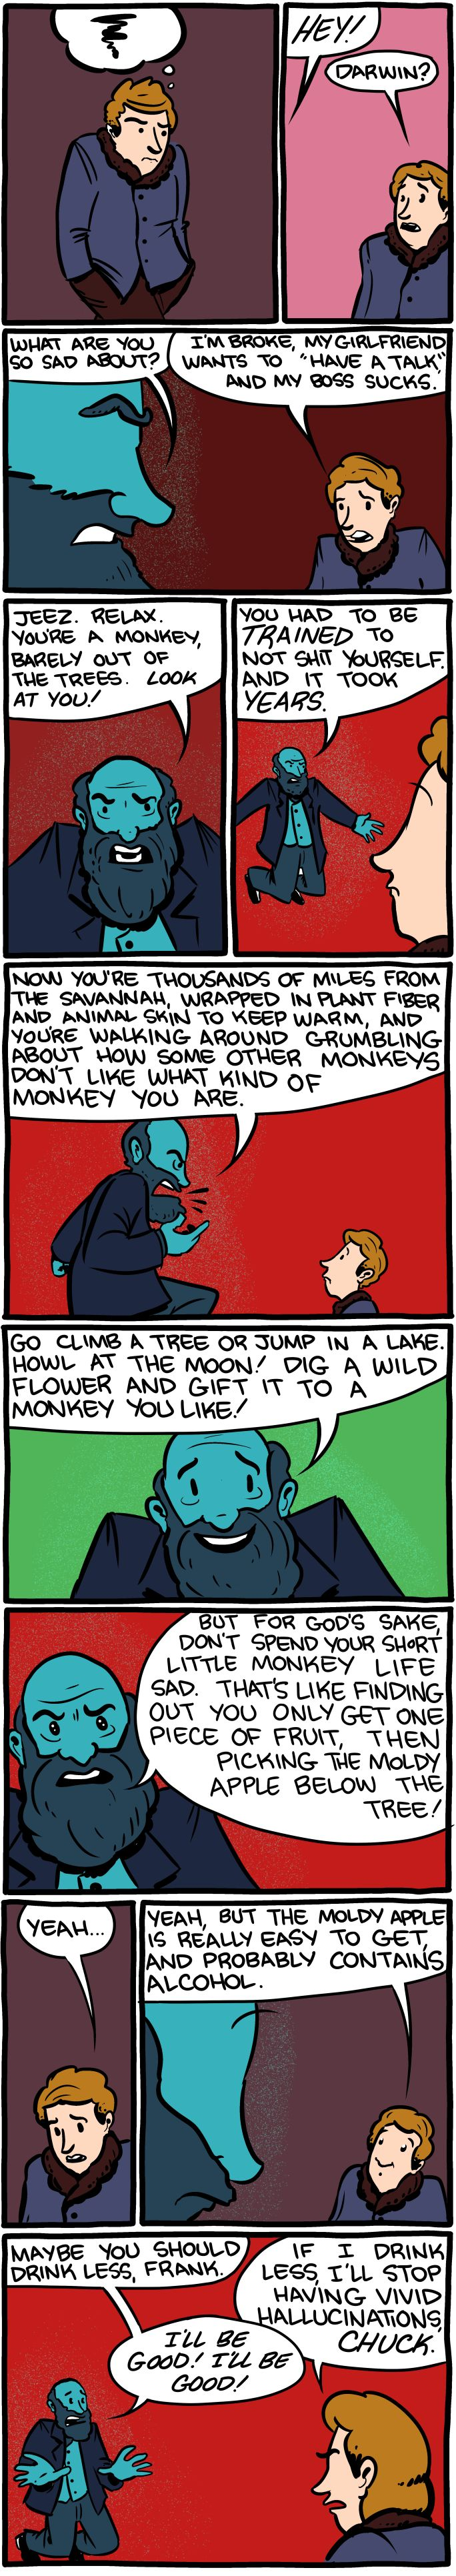 Saturday Morning Breakfast Cereal http://www.smbc-comics.com/index.php?id=3207#comic